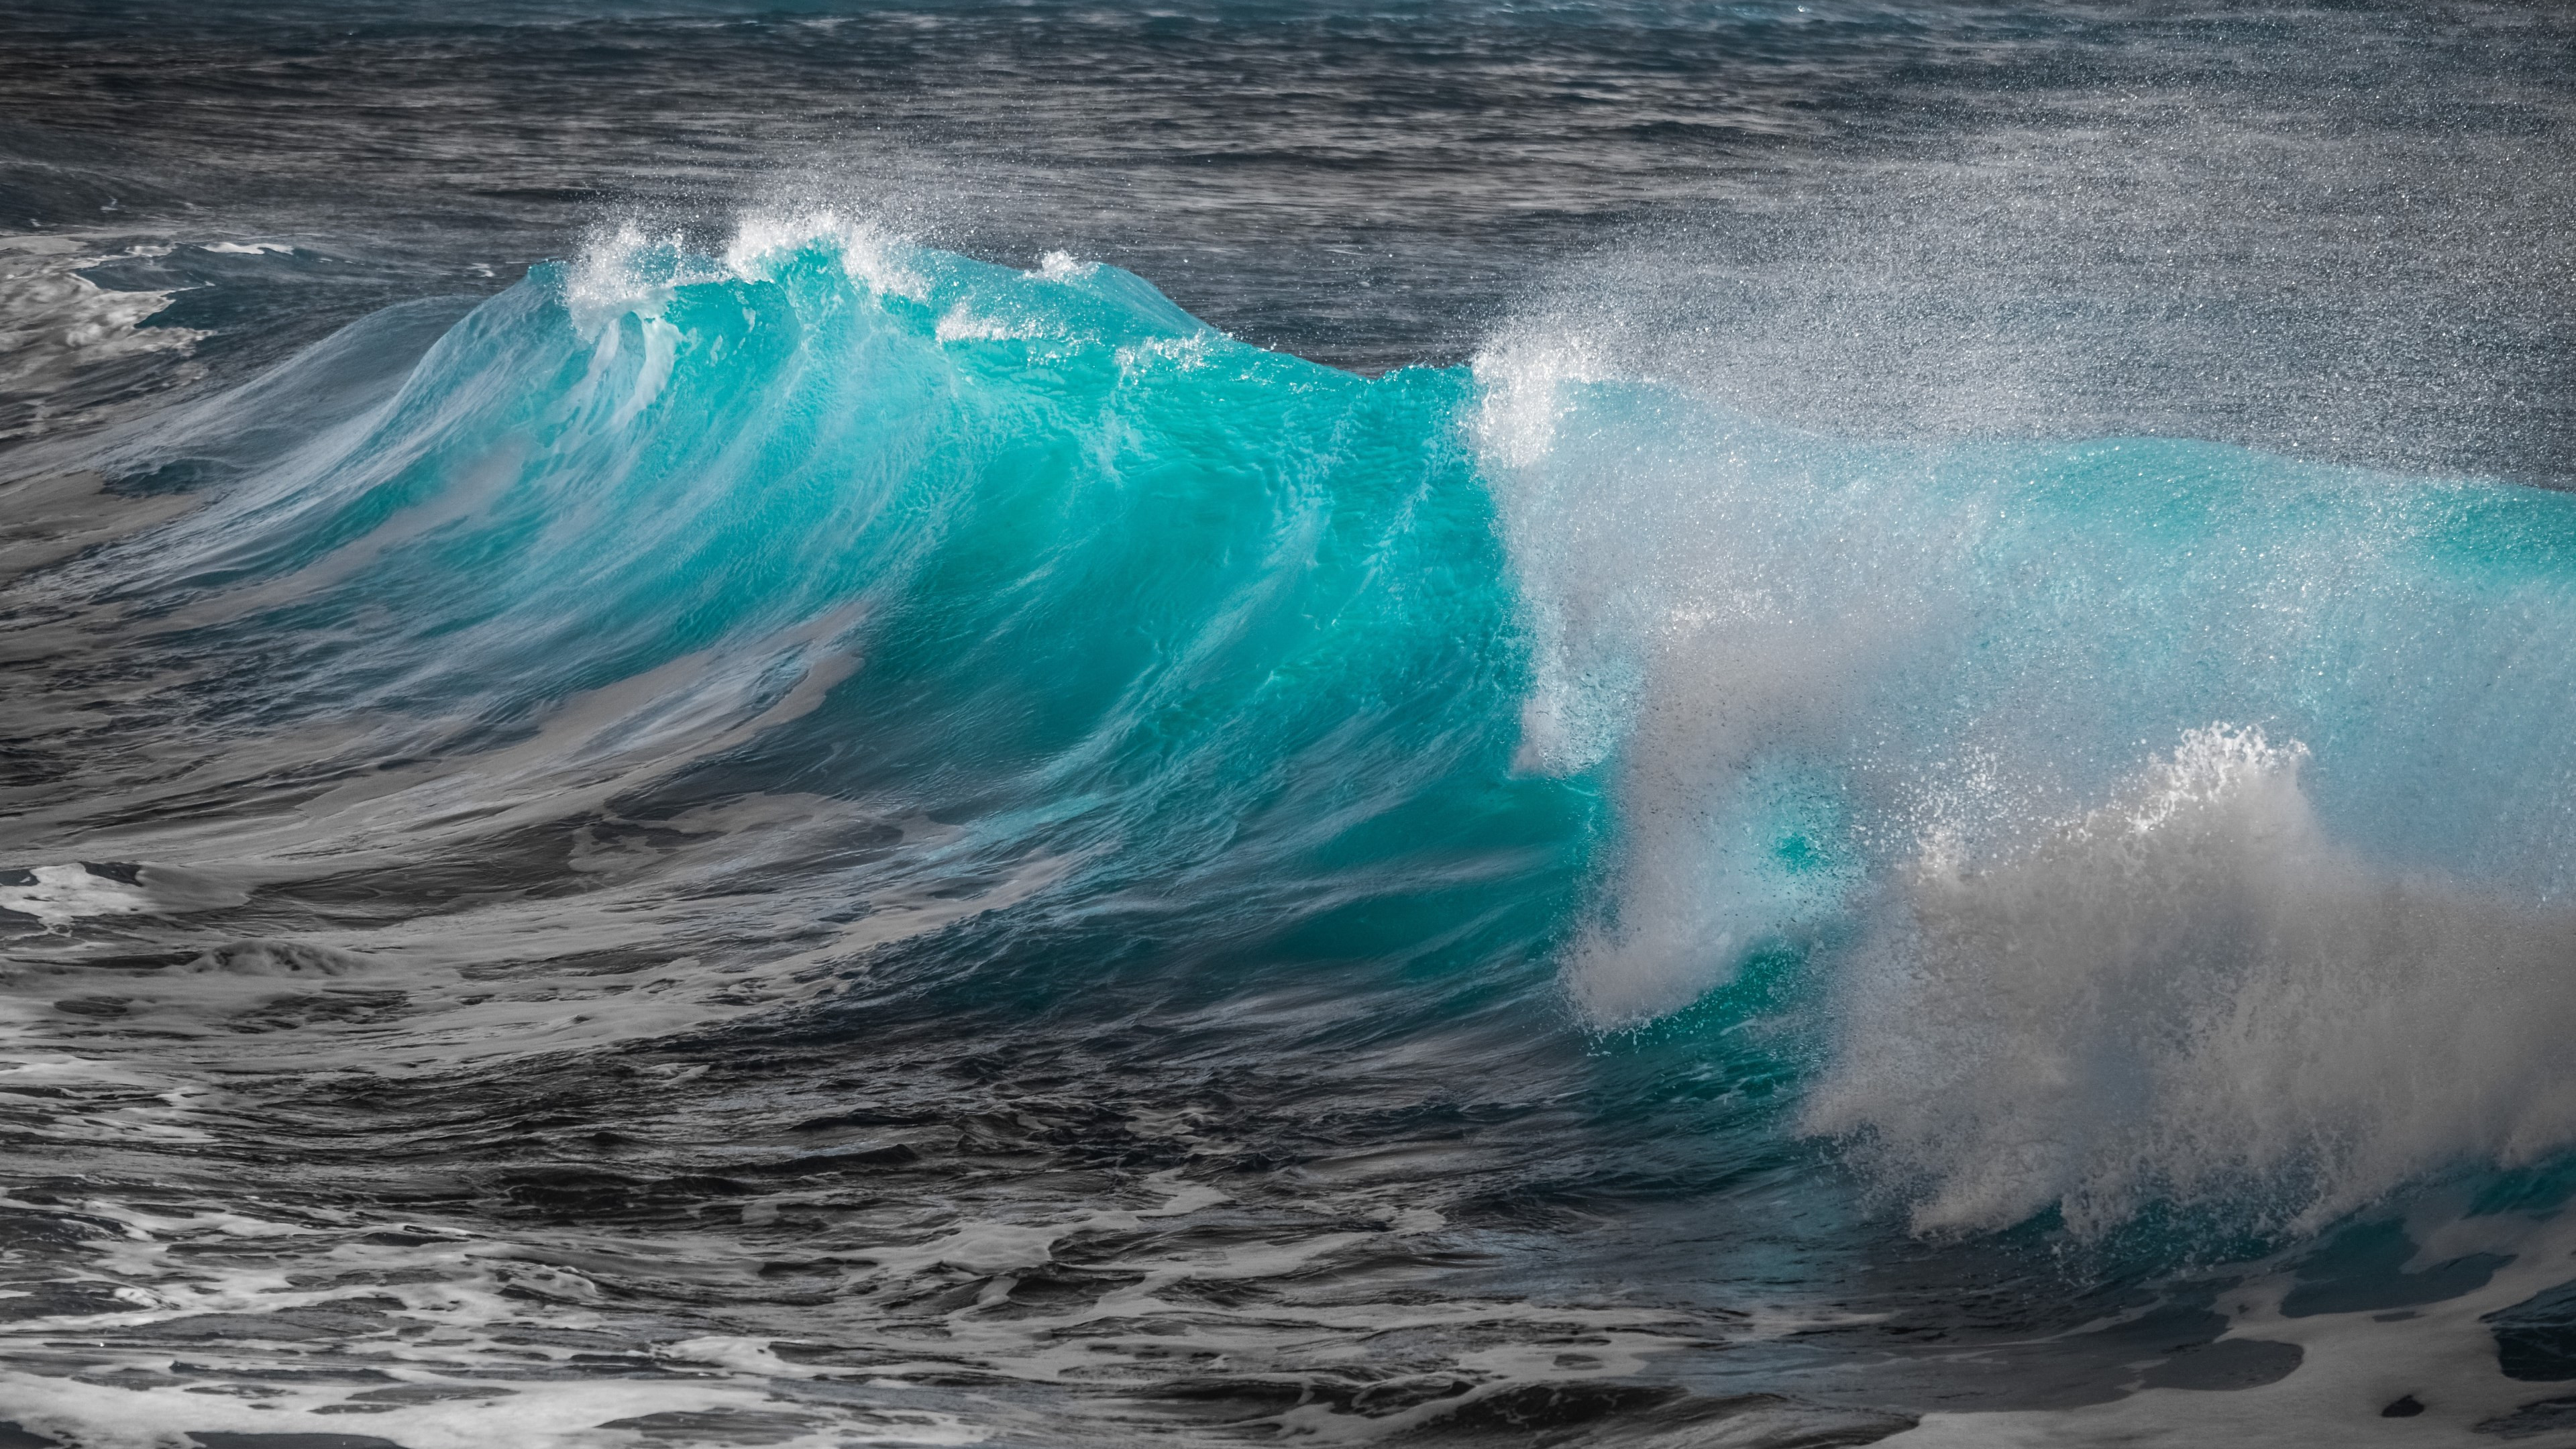 Turquoise sea wave wallpaper 3840x2160